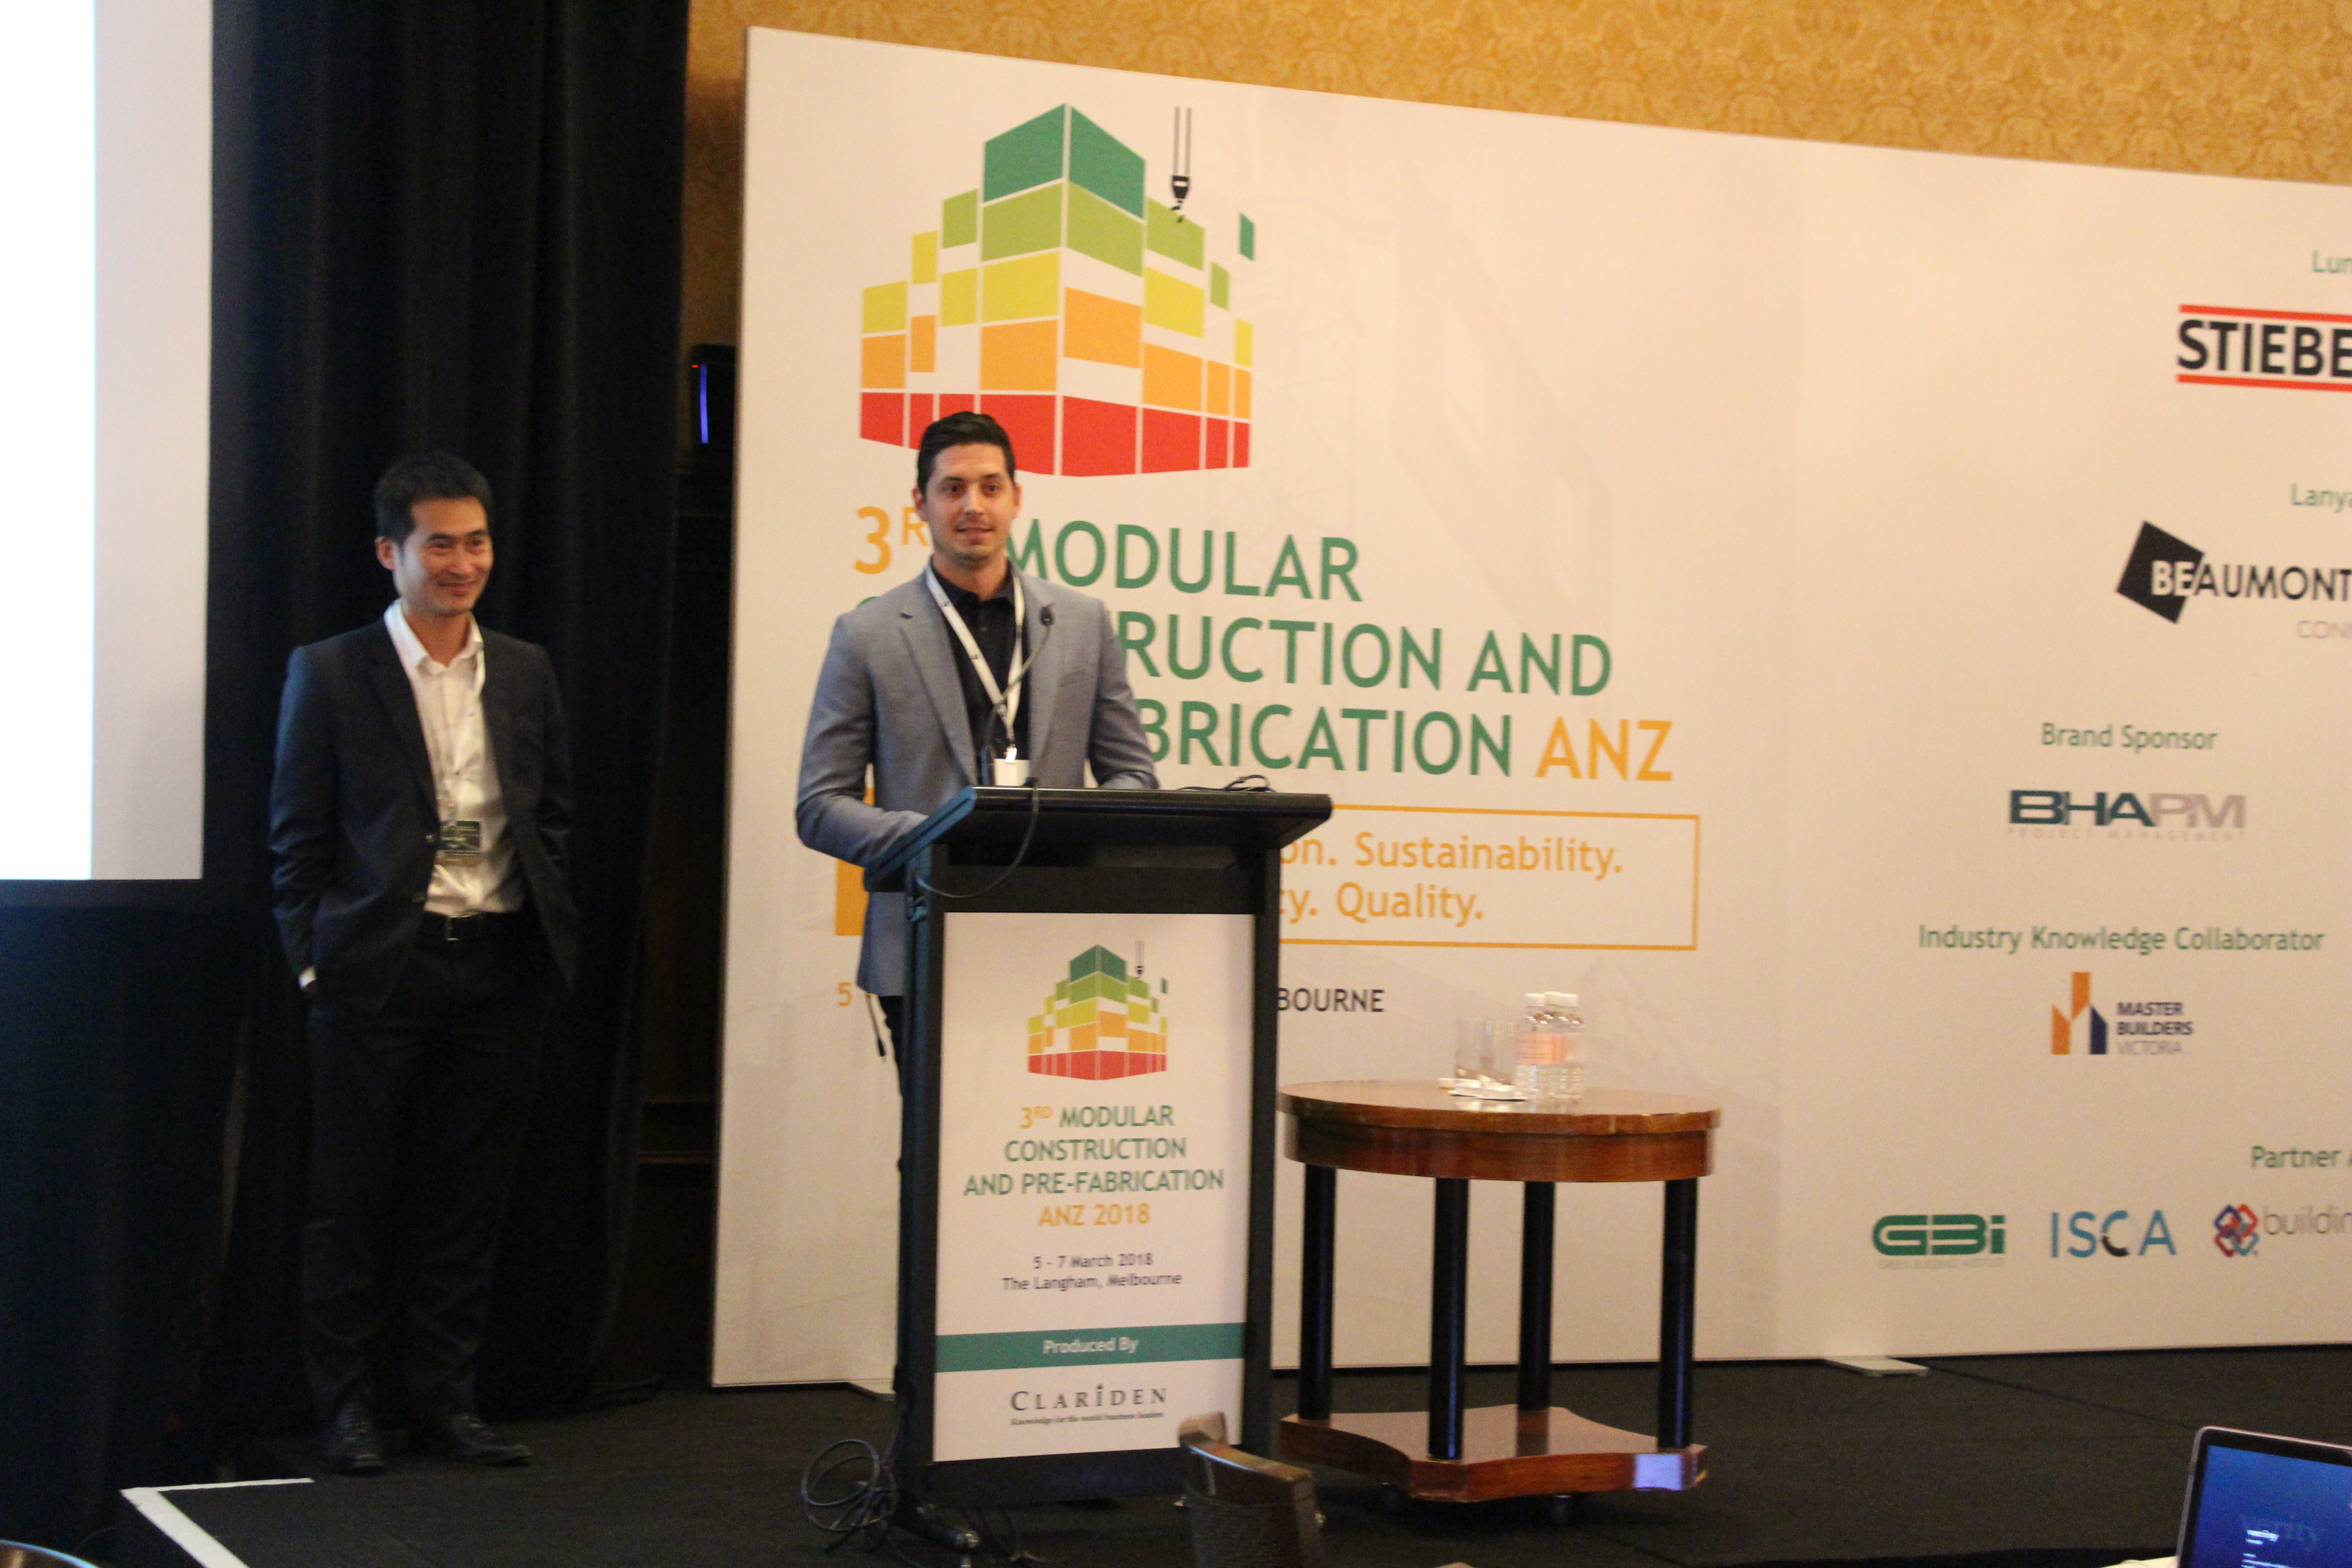 Nick Strongman presents at the 3rd Modular Construction and Prefabrication Conference